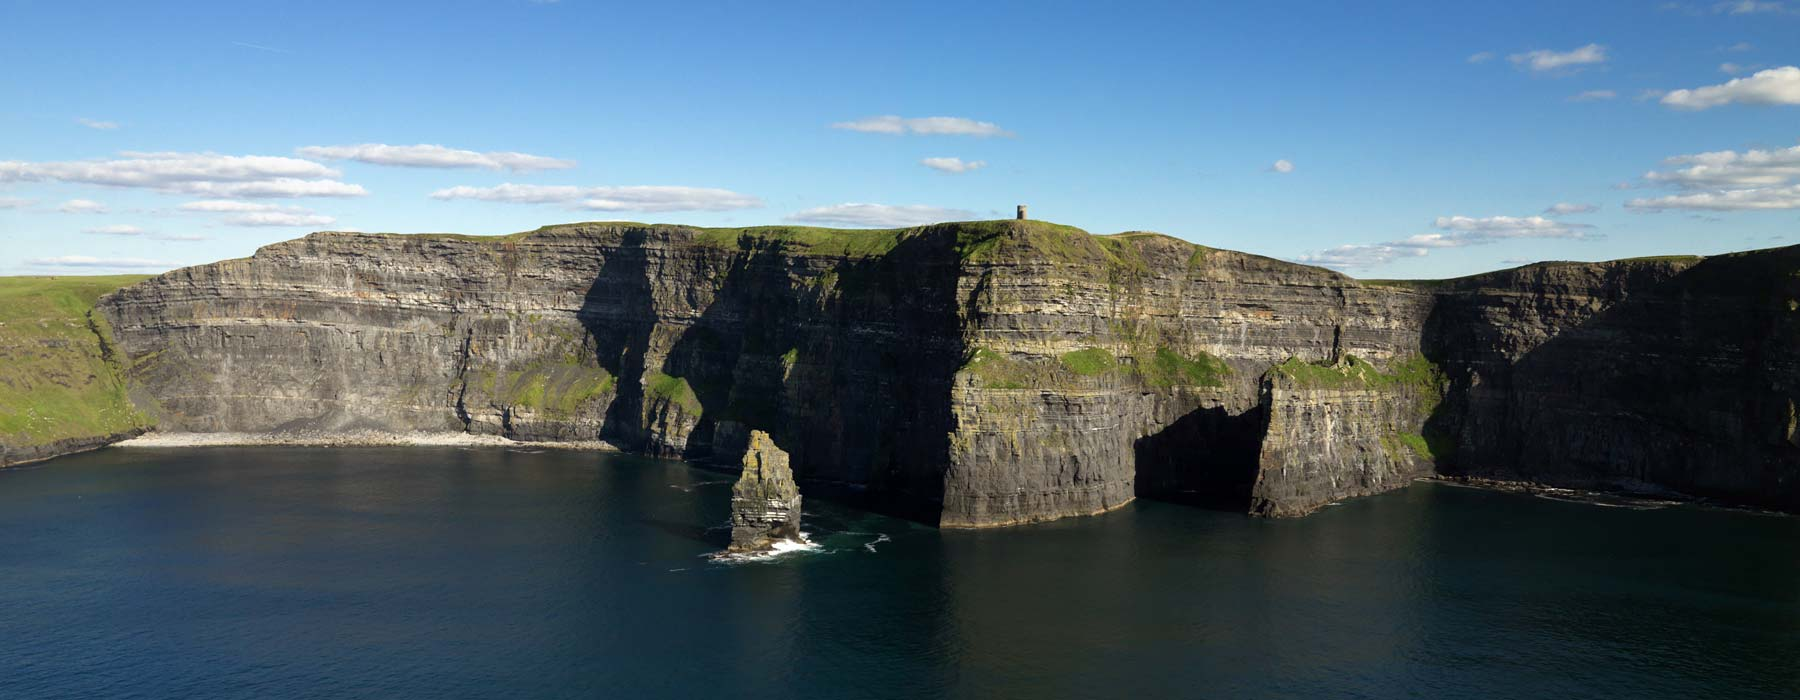 Cliffs of Moher Cruise plus Aran Islands